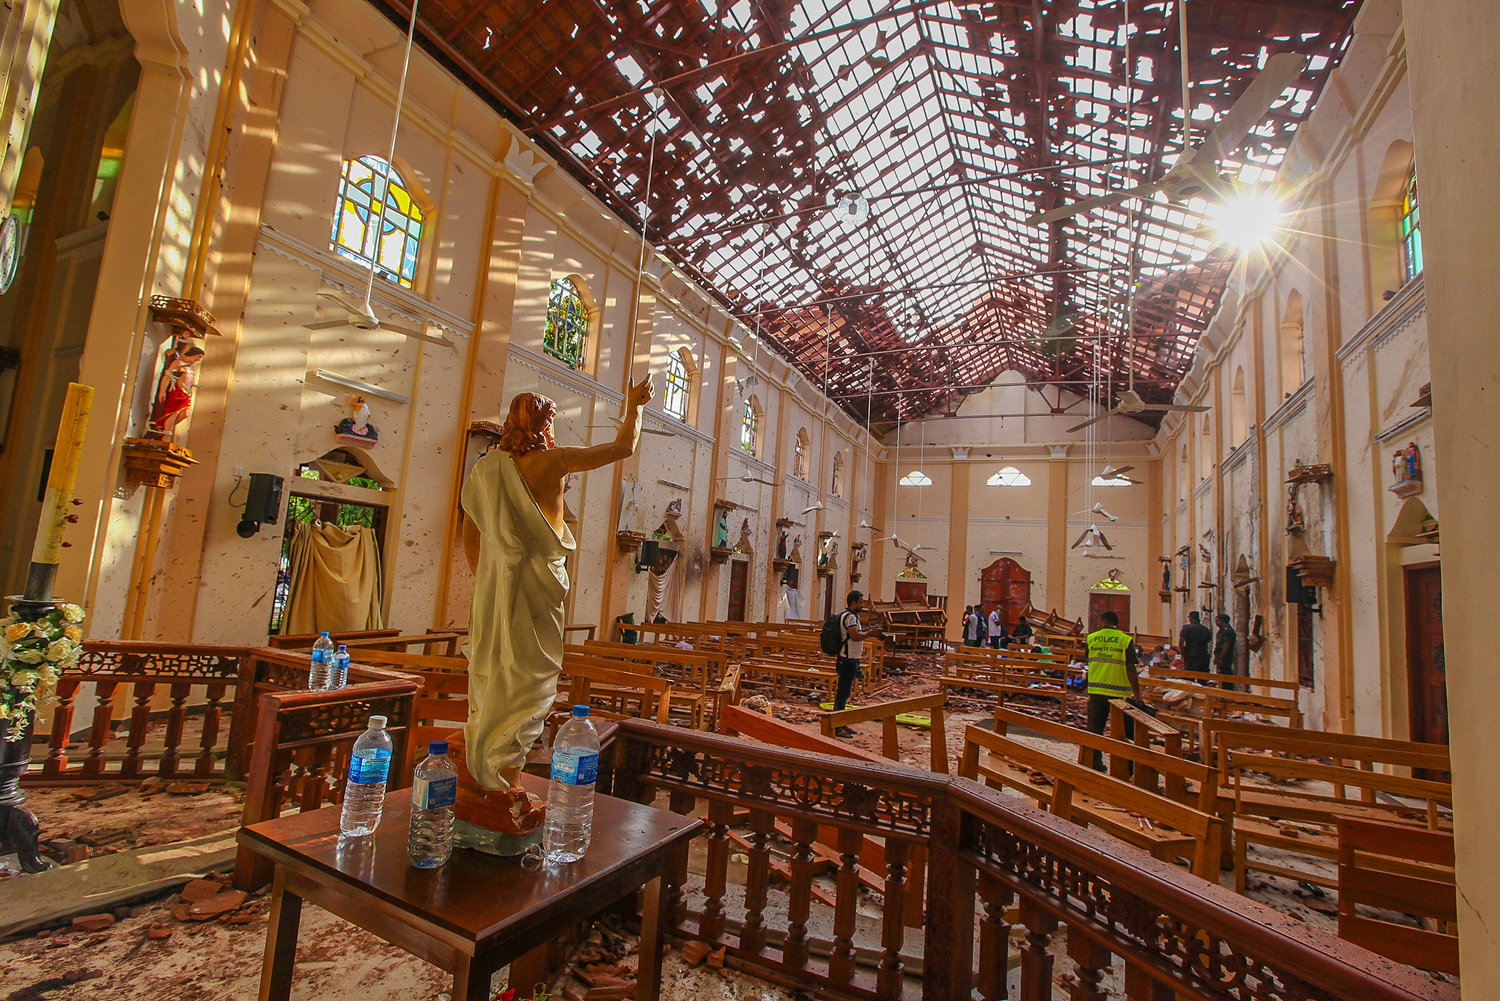 A view of St. Sebastian's Church damaged in blast in Negombo, north of Colombo, Sri Lanka, Sunday, April 21, 2019.  More than two hundred were killed and hundreds more hospitalized with injuries from nine blasts that rocked churches and hotels in and just outside of Sri Lanka's capital on Easter Sunday, officials said, the worst violence to hit the South Asian country since its civil war ended a decade ago. (AP Photo/Chamila Karunarathne)